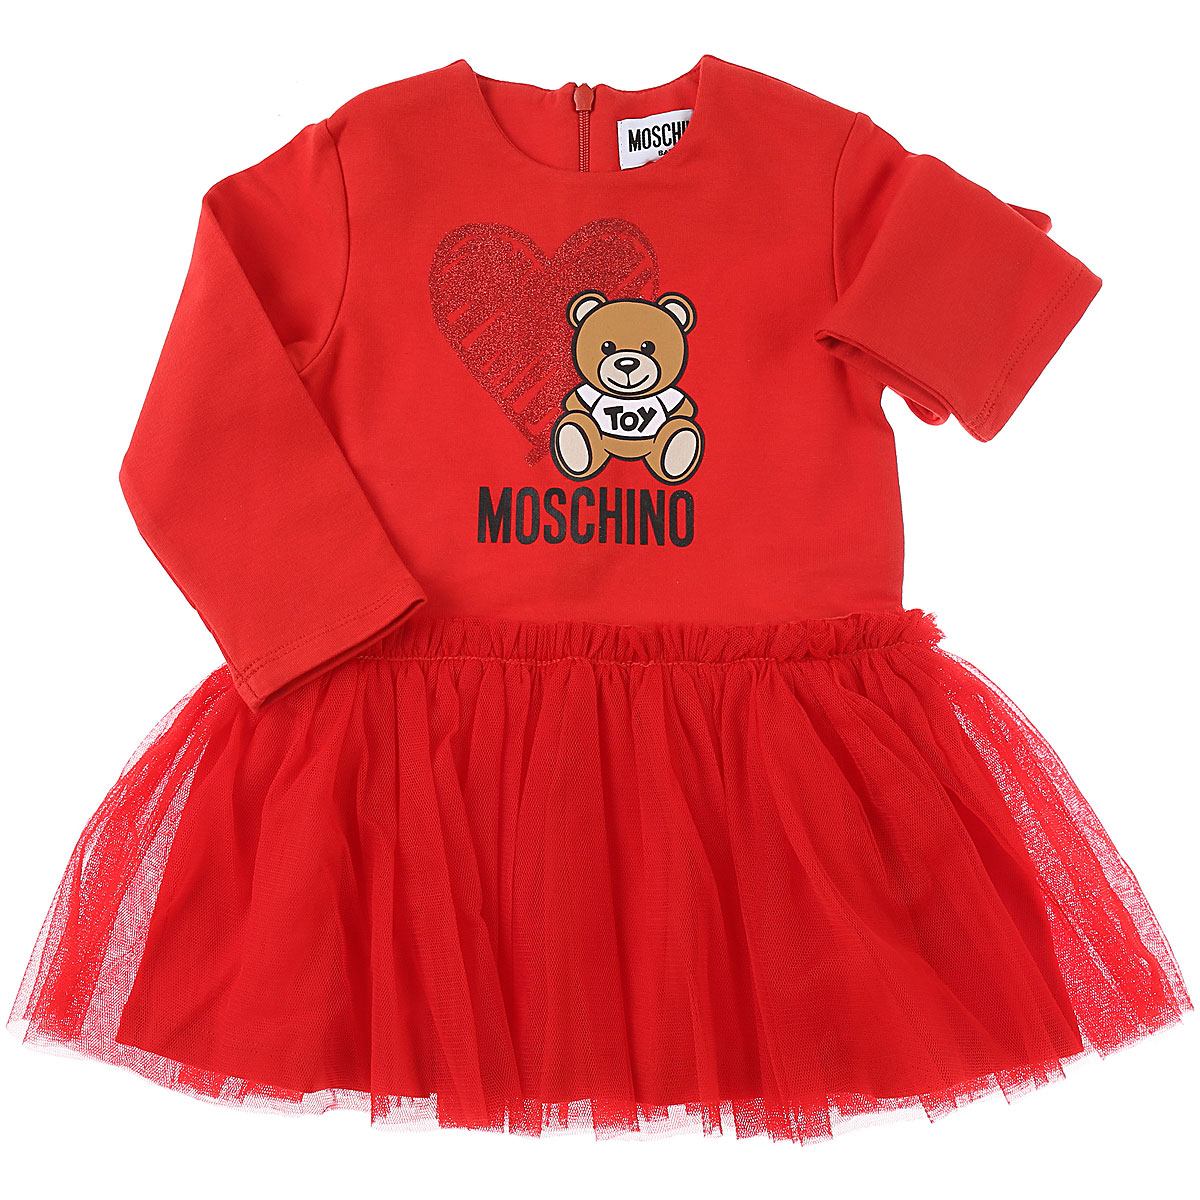 Moschino Baby Dress for Girls On Sale, Red, Cotton, 2019, 12M 18M 2Y 3Y 9M 9M